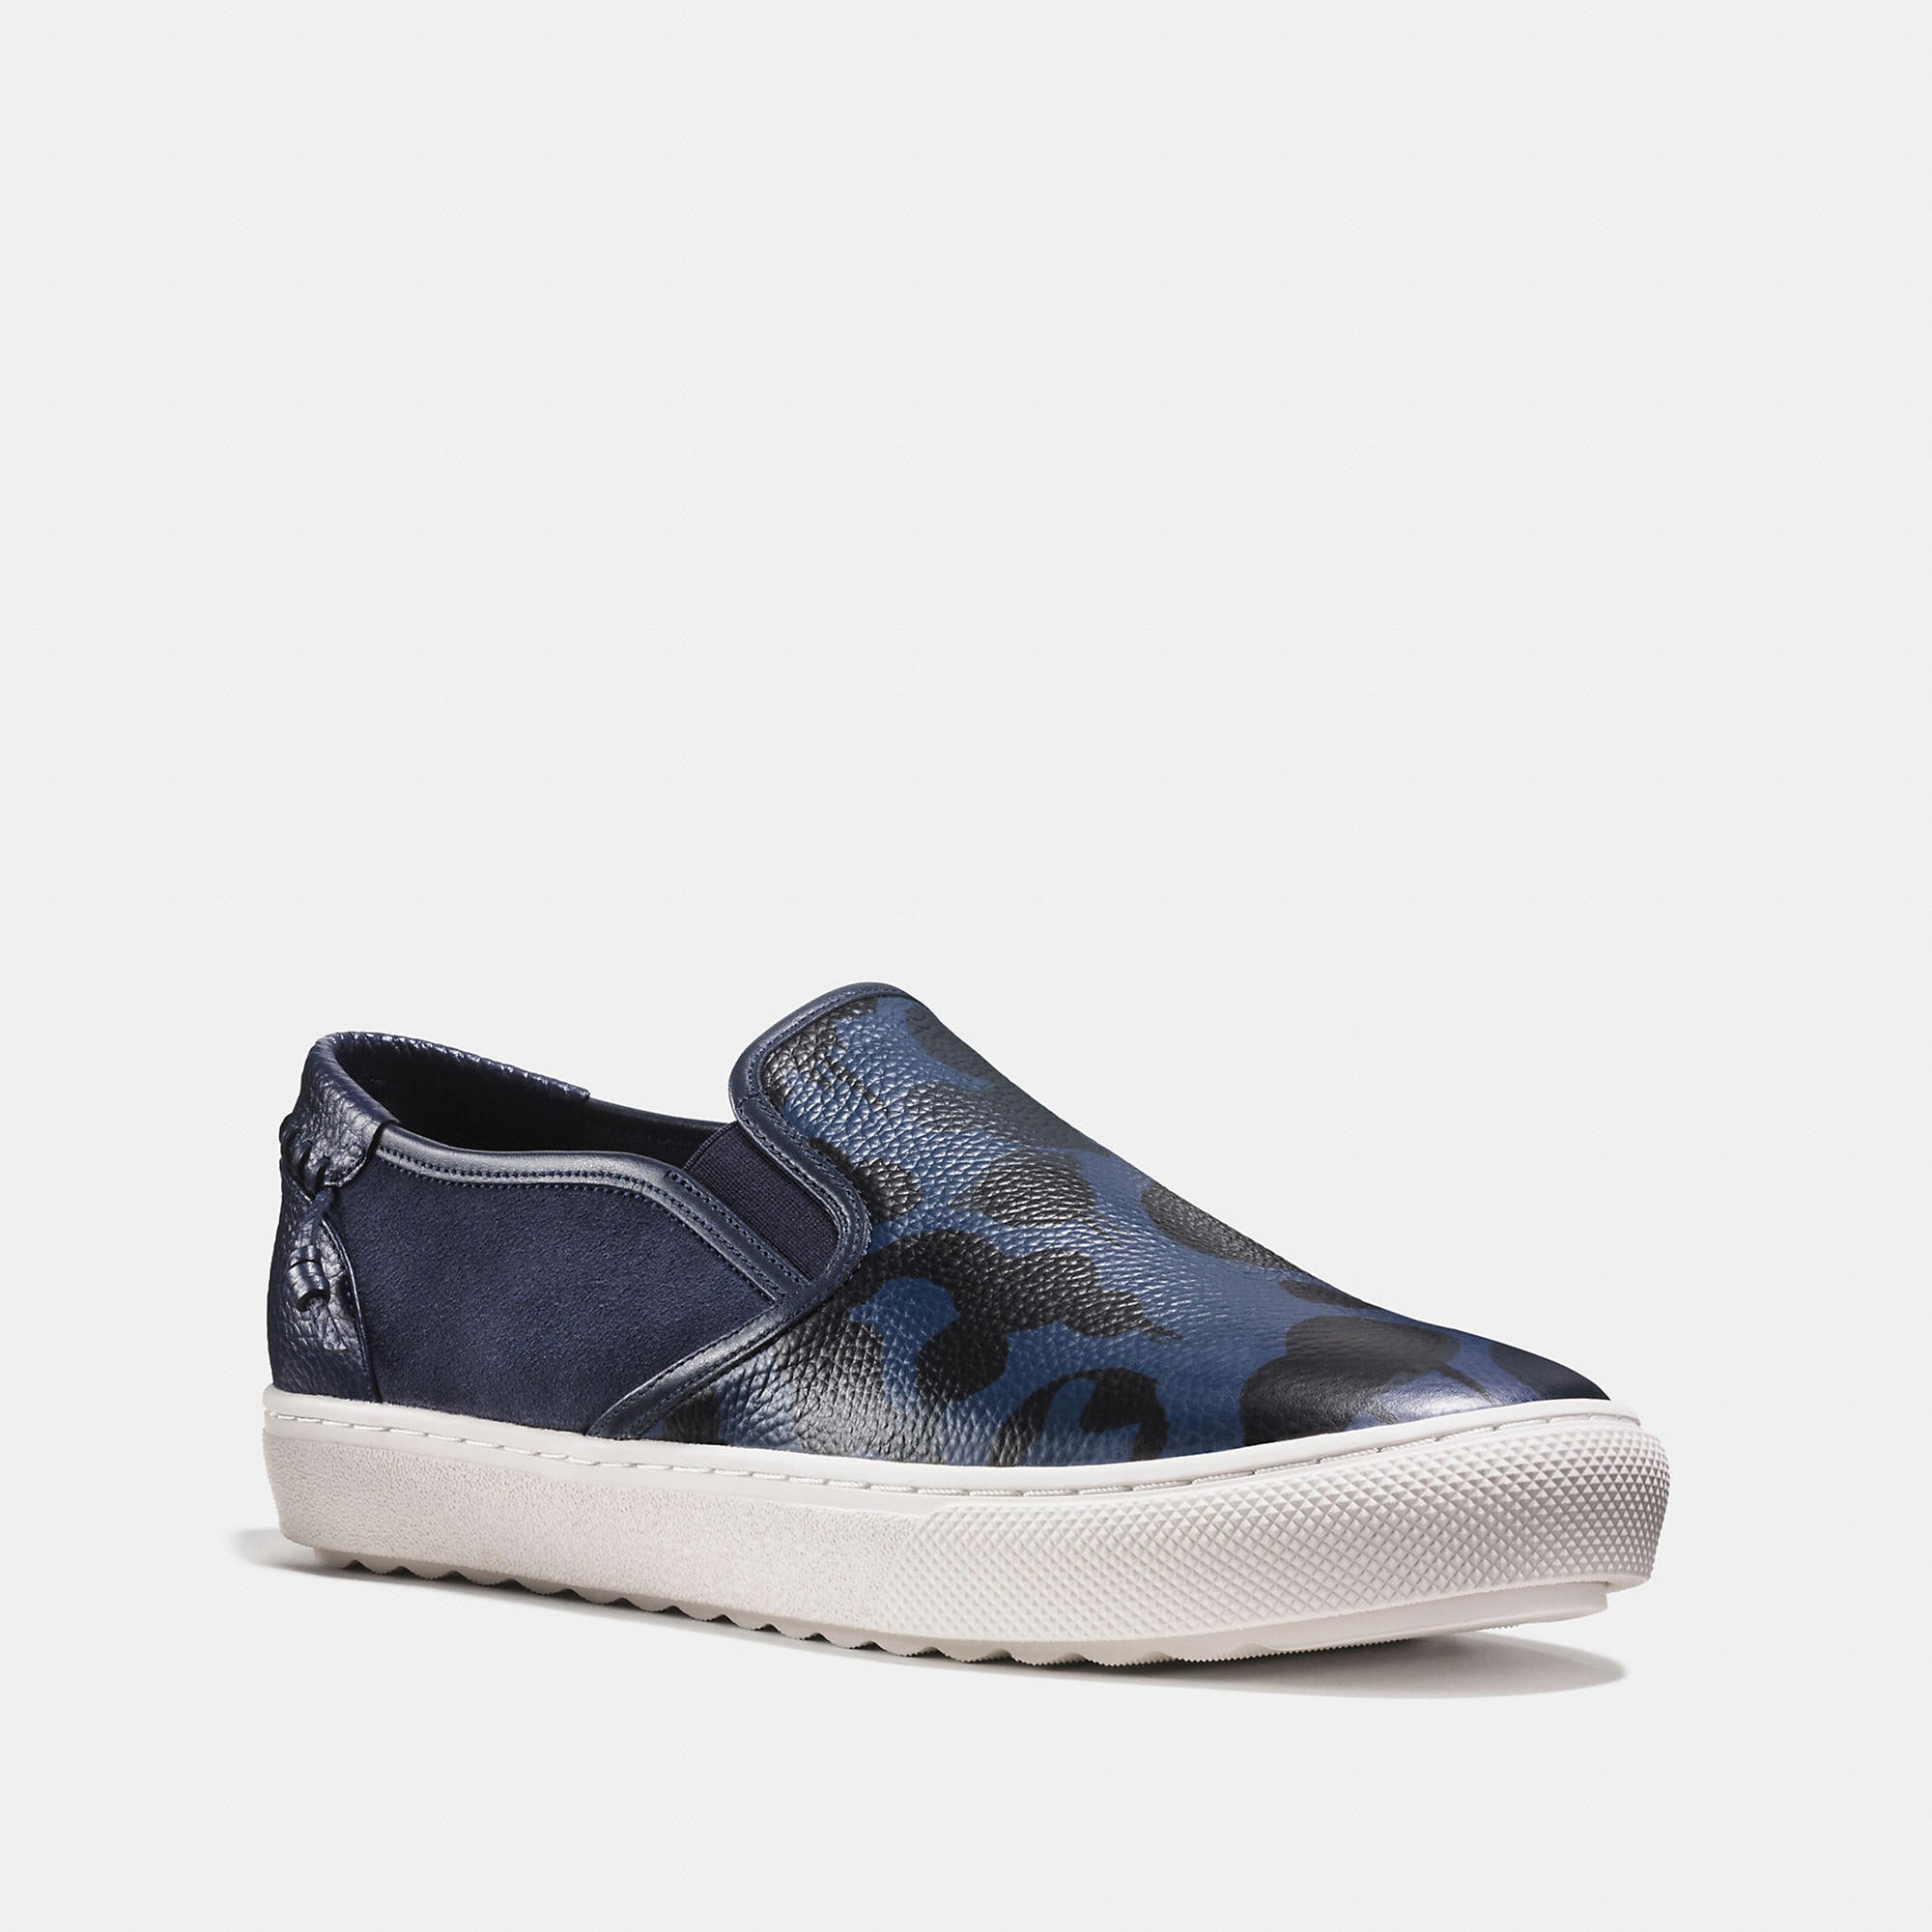 Coach C115 Wild Beast Slip On Sneaker